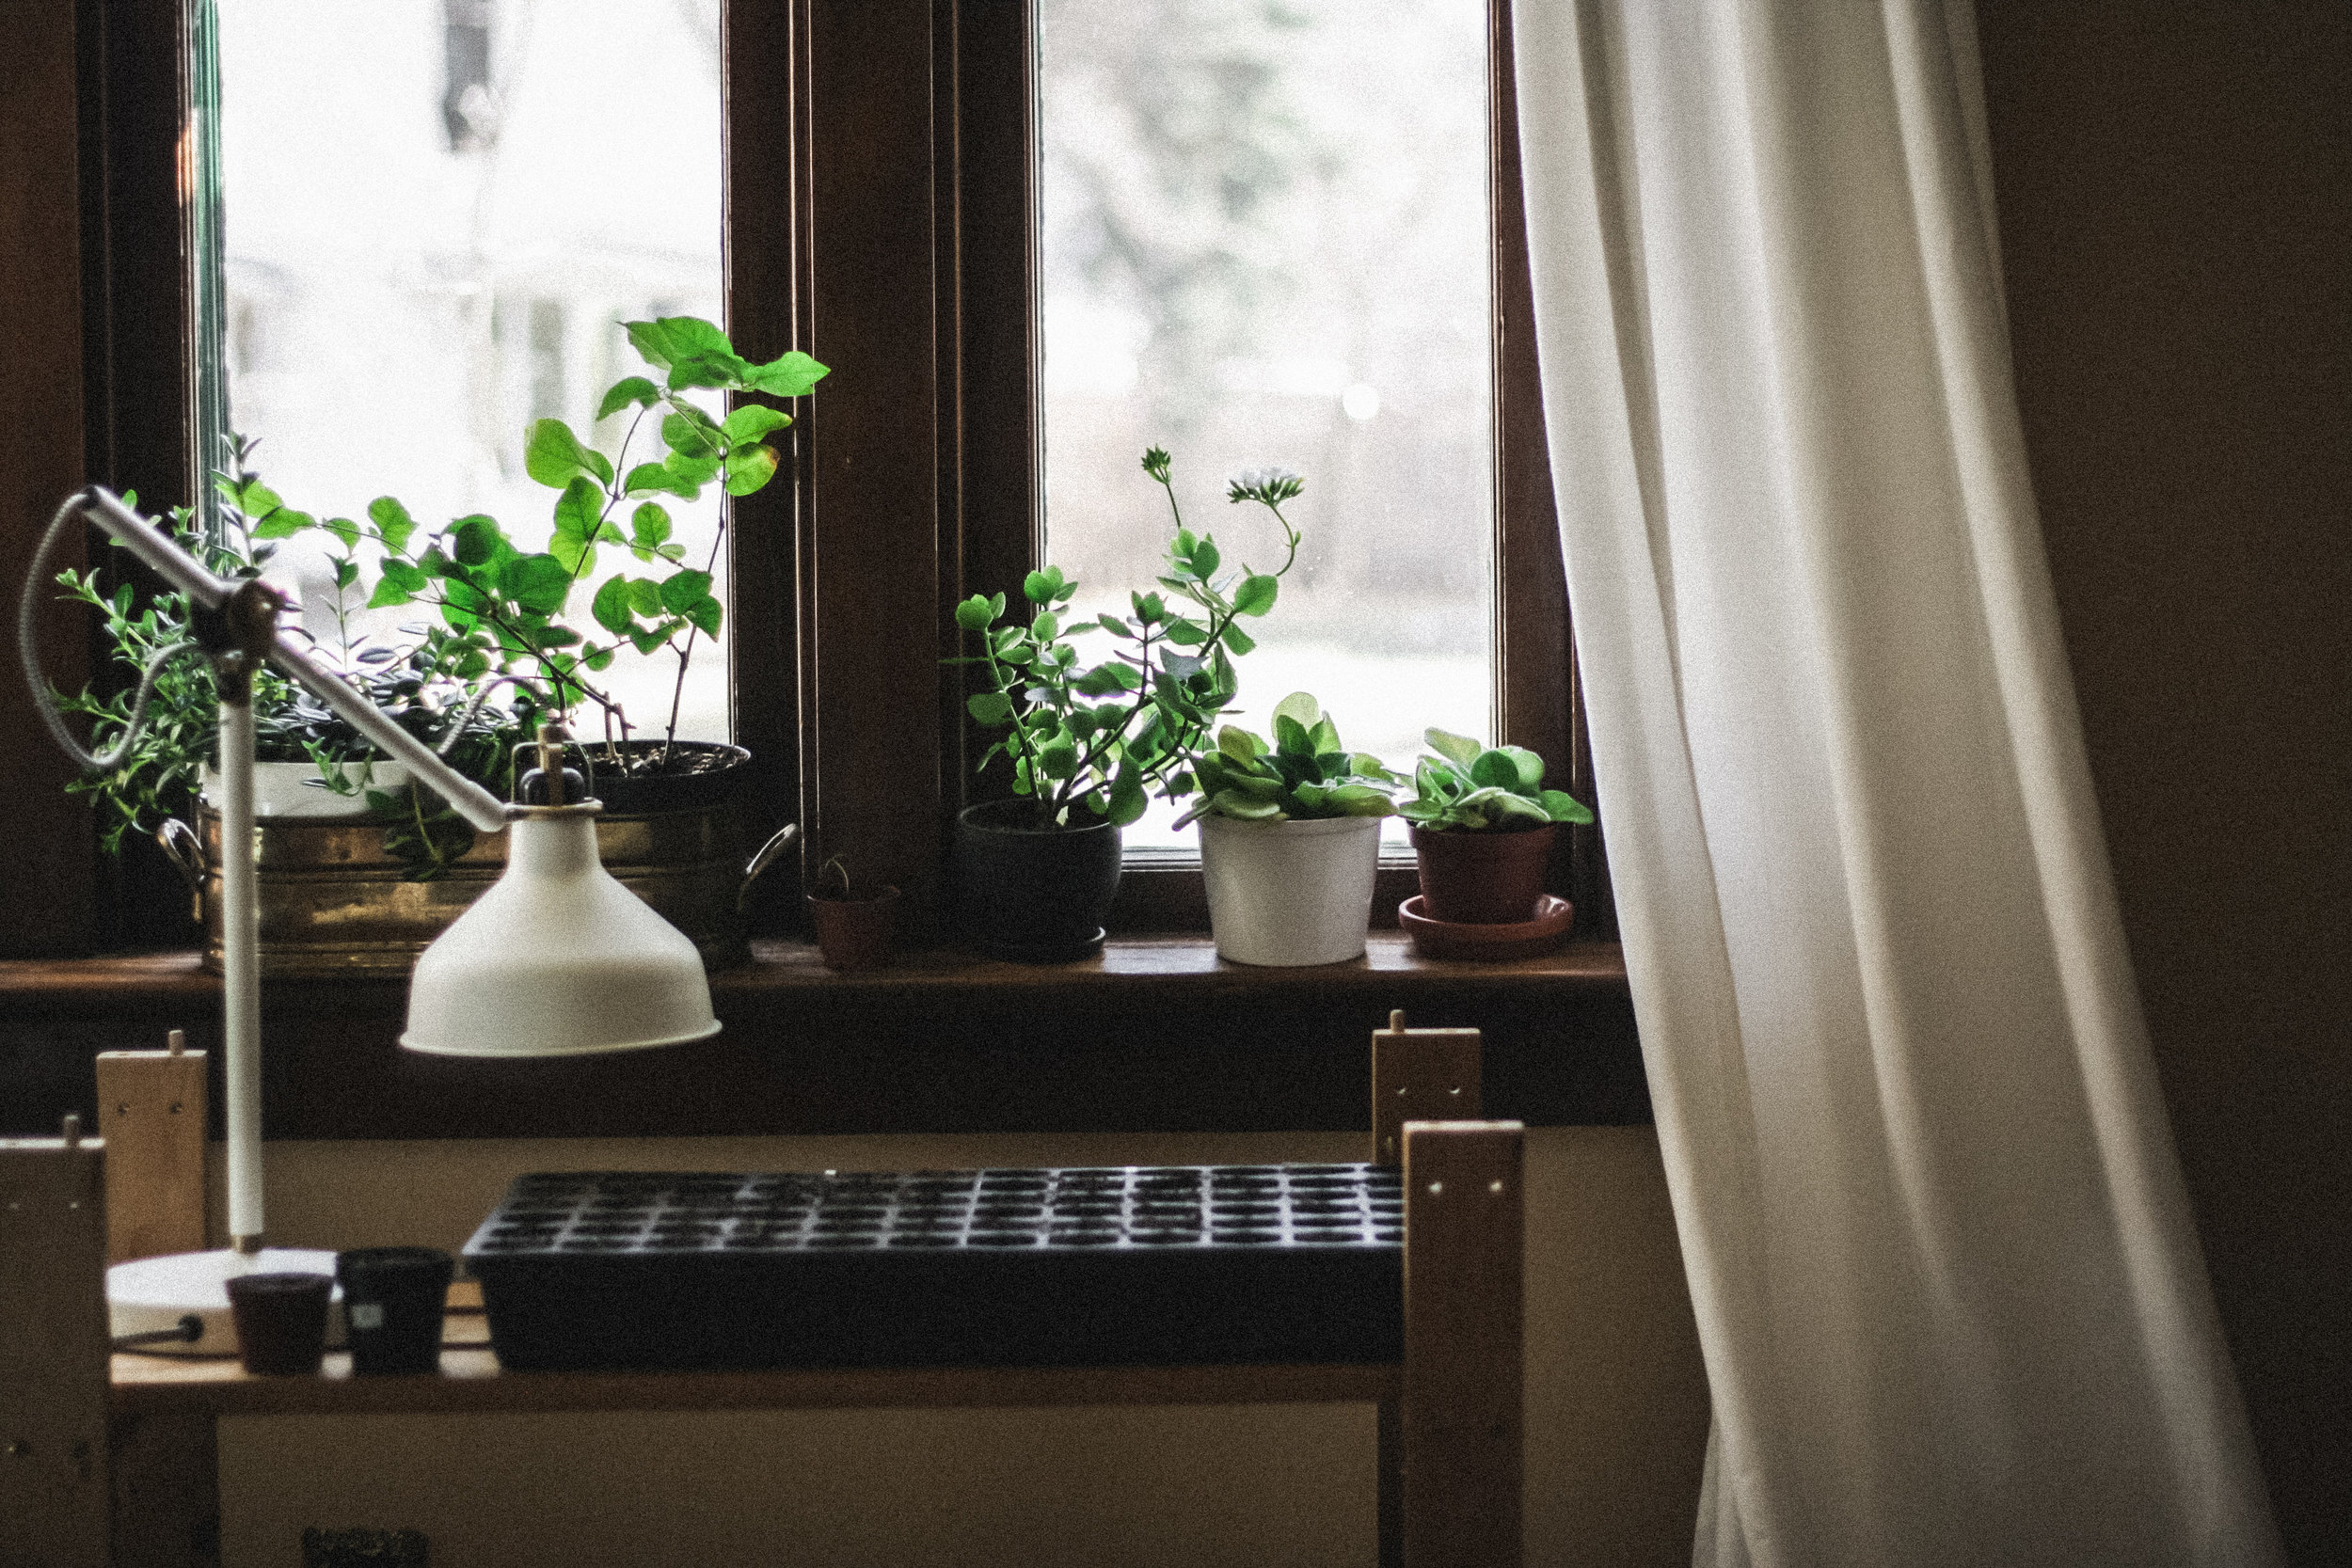 Windowsill-plants.jpg